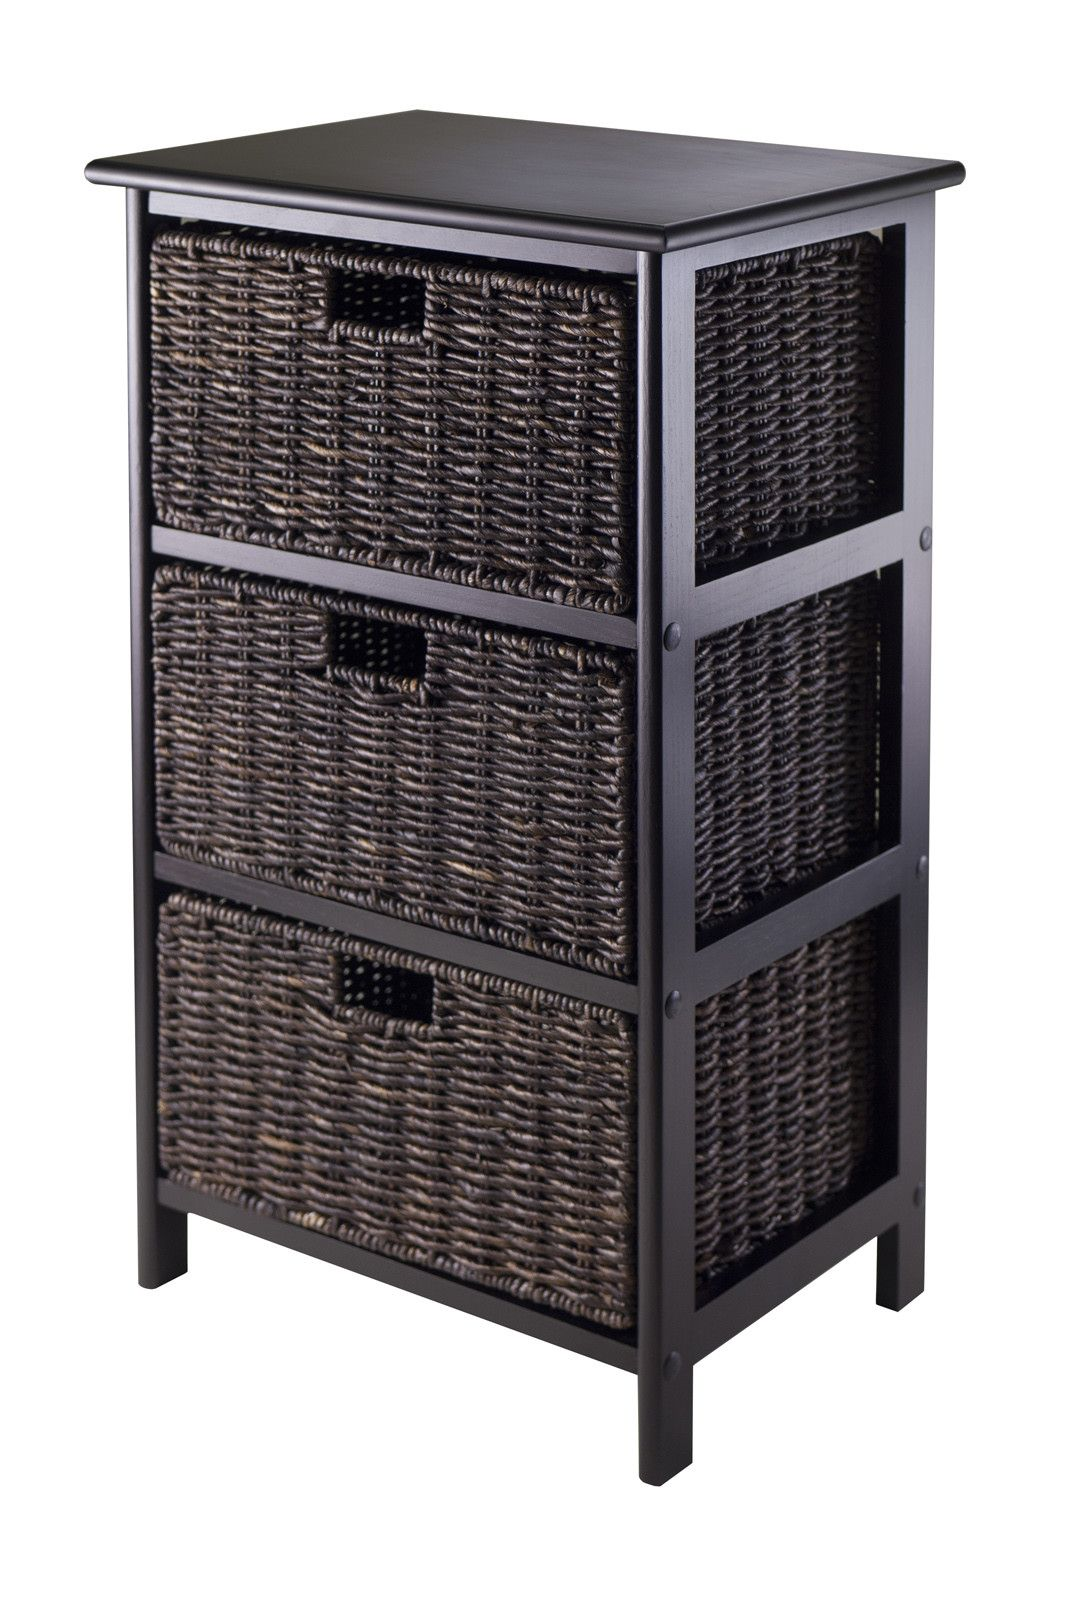 Winsome Omaha Storage Rack with 3 Foldable Baskets & Reviews - nighttable for my side of the bed